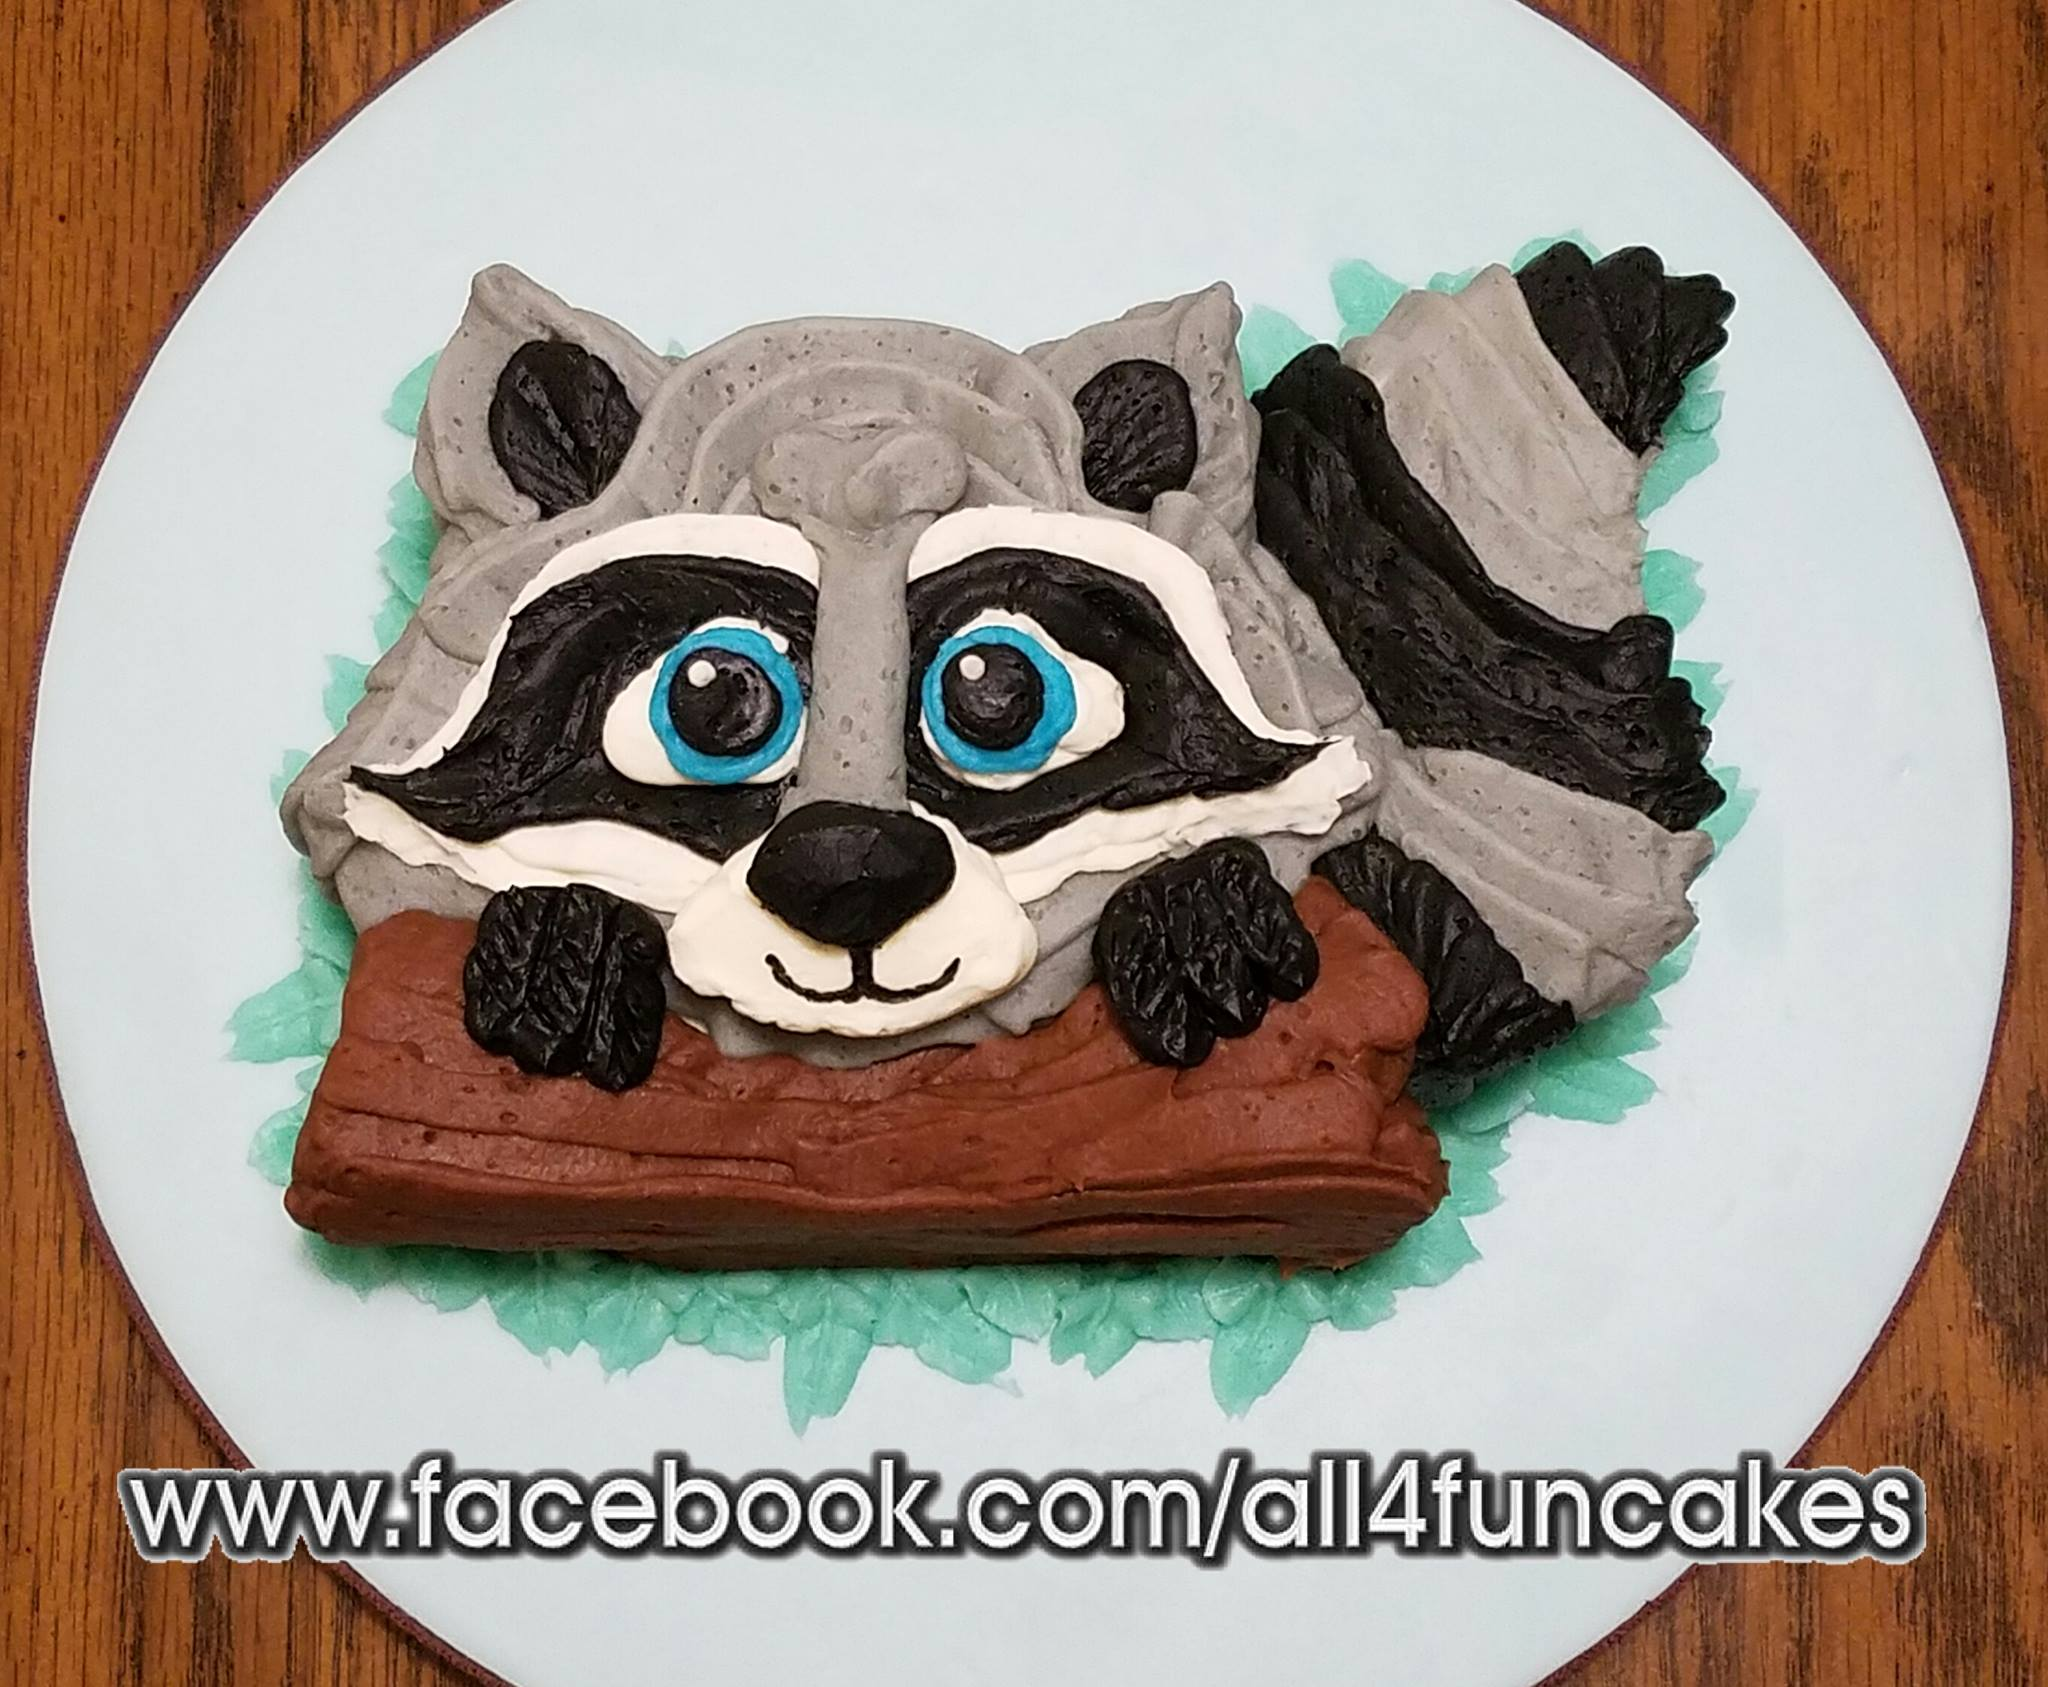 Adorable Racoon Smash Cake by All4Fun Cakes